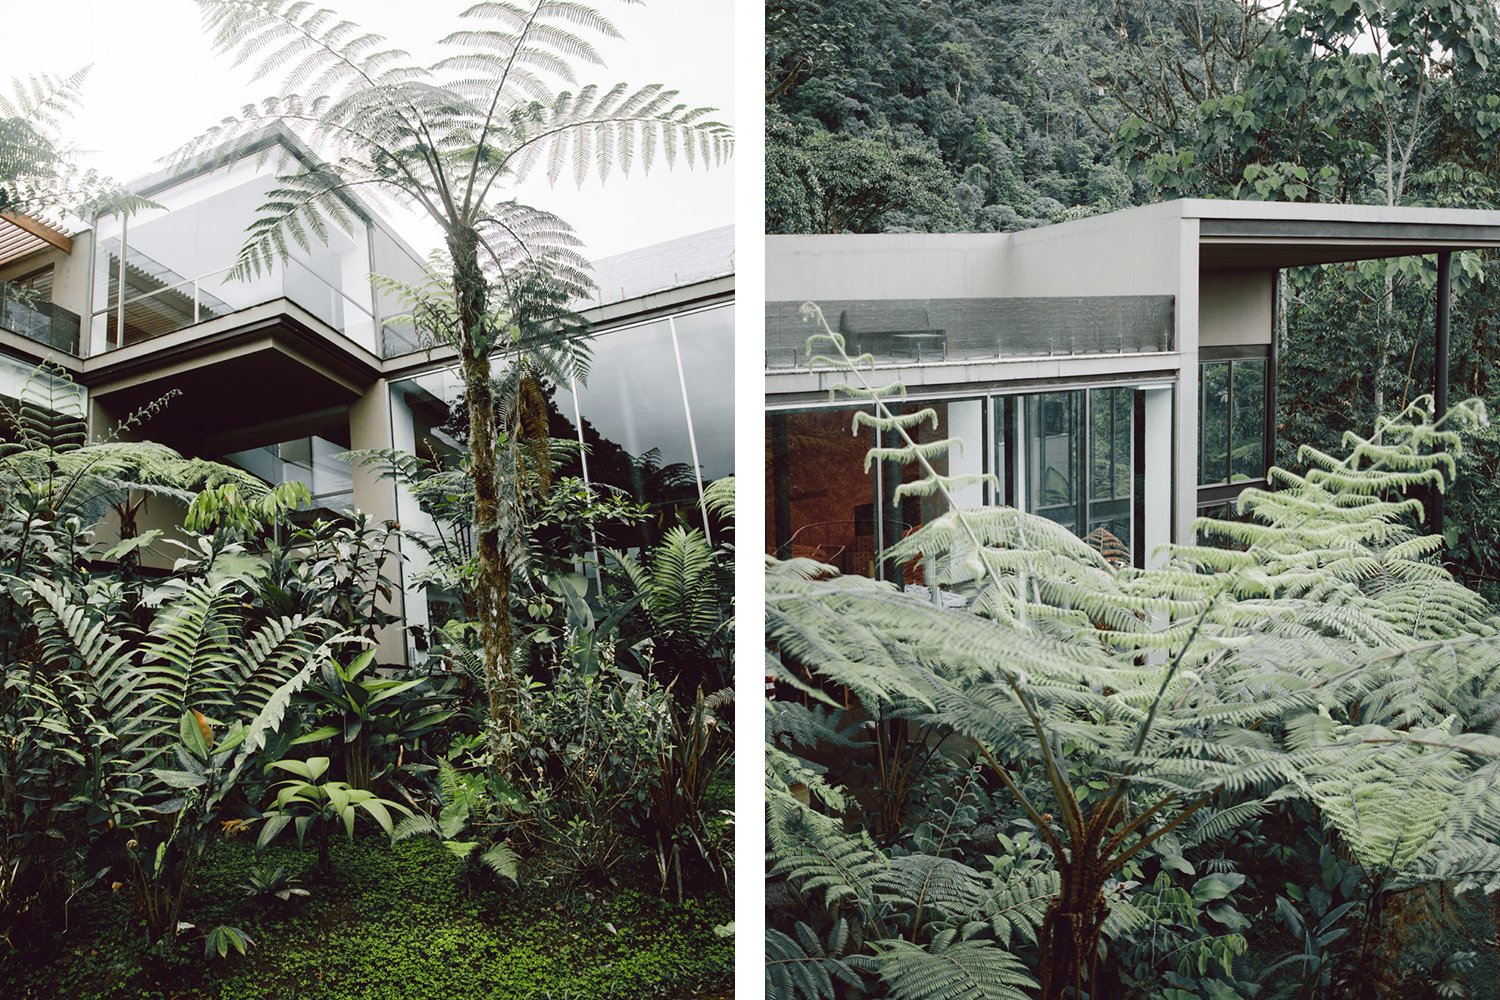 Photo 7 of 11 in Within Ecuador's Most Beloved Cloud Forest, A Luxury Lodge